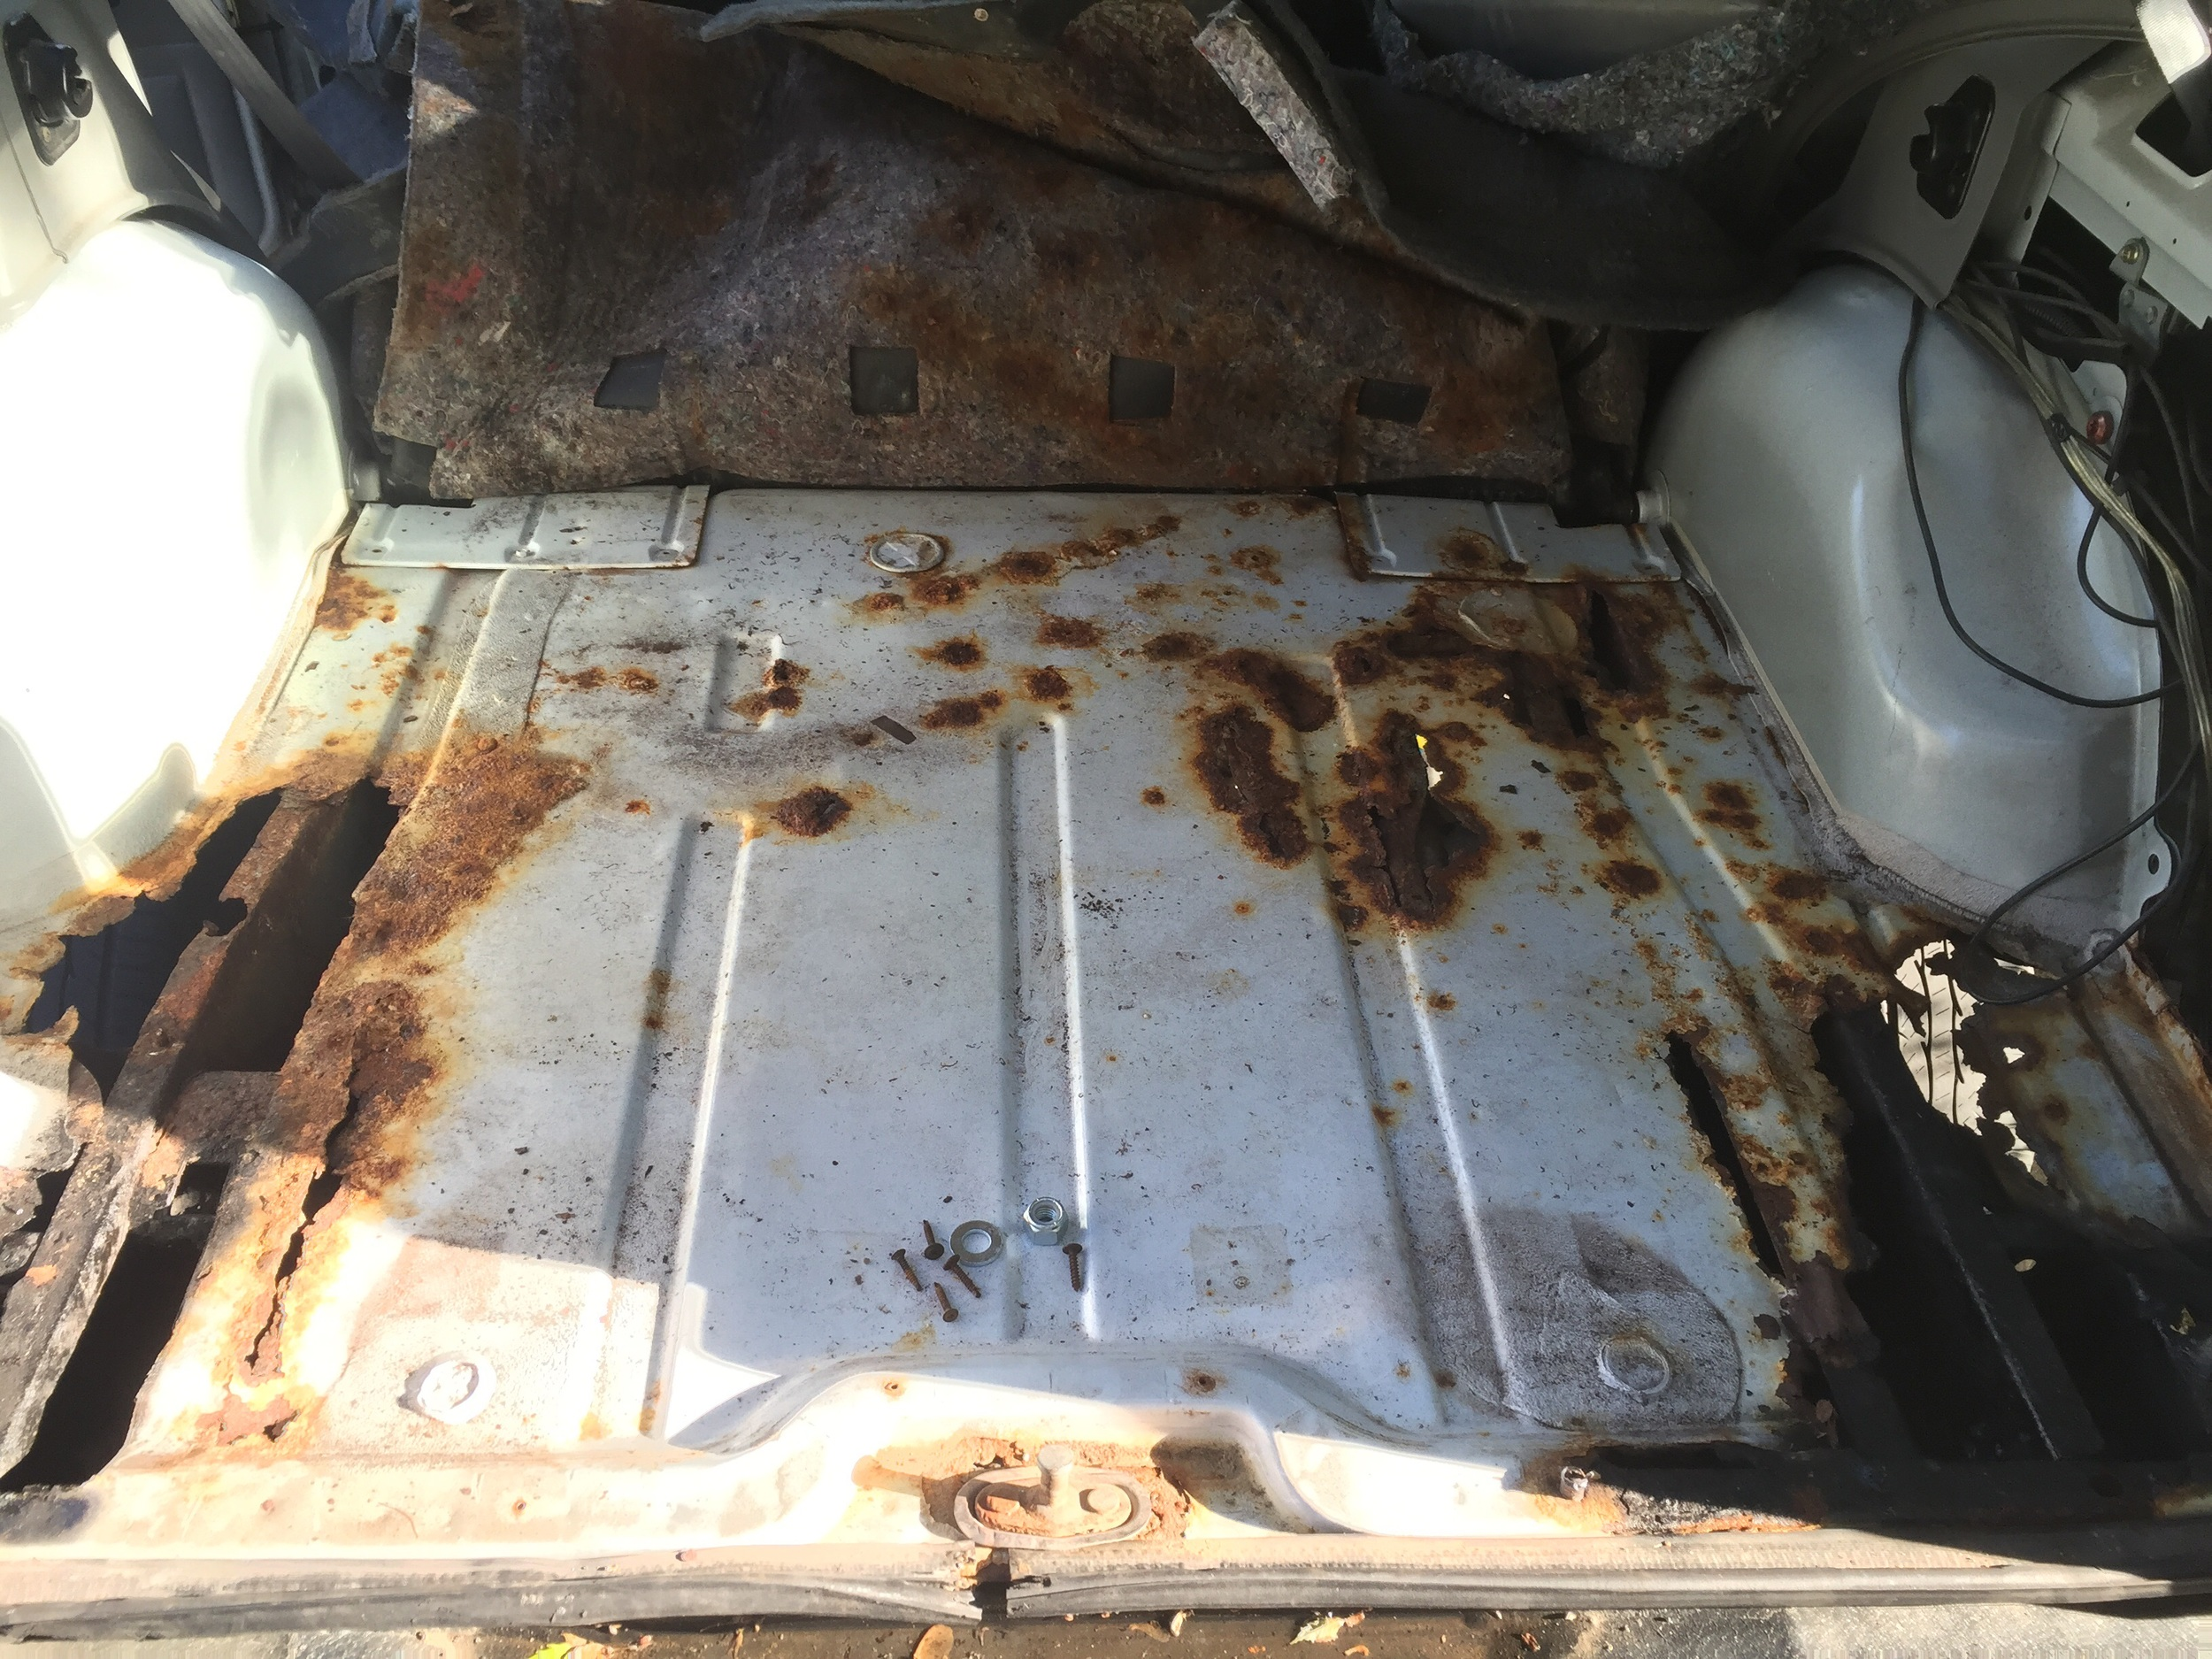 Floors are all rusty. Planning on replacing every rusty panel starting from the rear and moving towards the front! Stay tuned for updates!